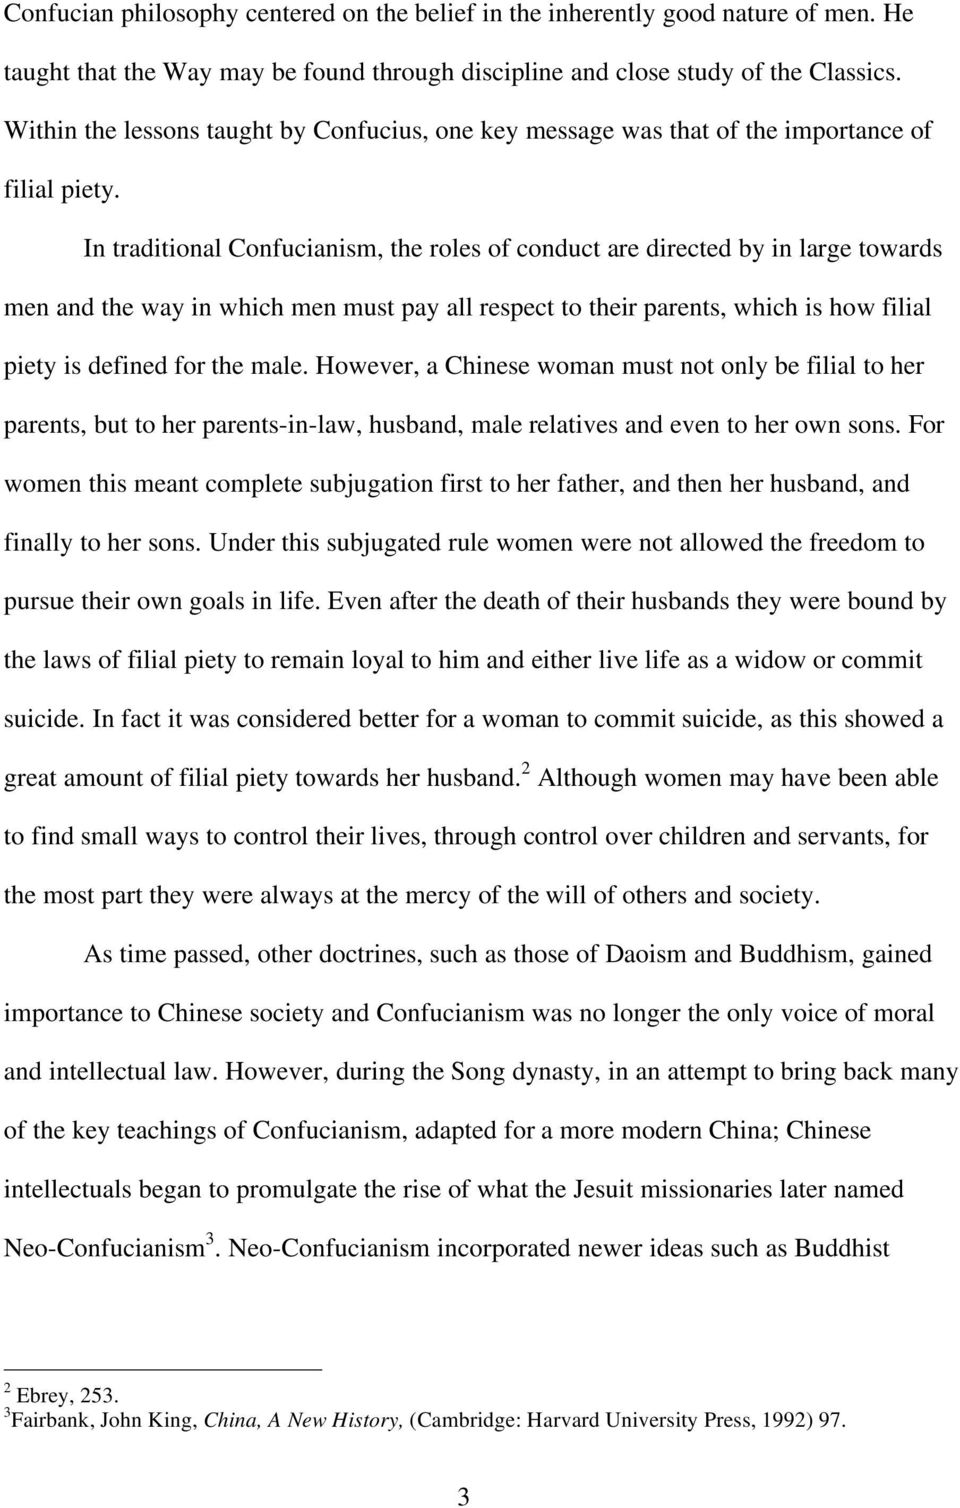 In traditional Confucianism, the roles of conduct are directed by in large towards men and the way in which men must pay all respect to their parents, which is how filial piety is defined for the